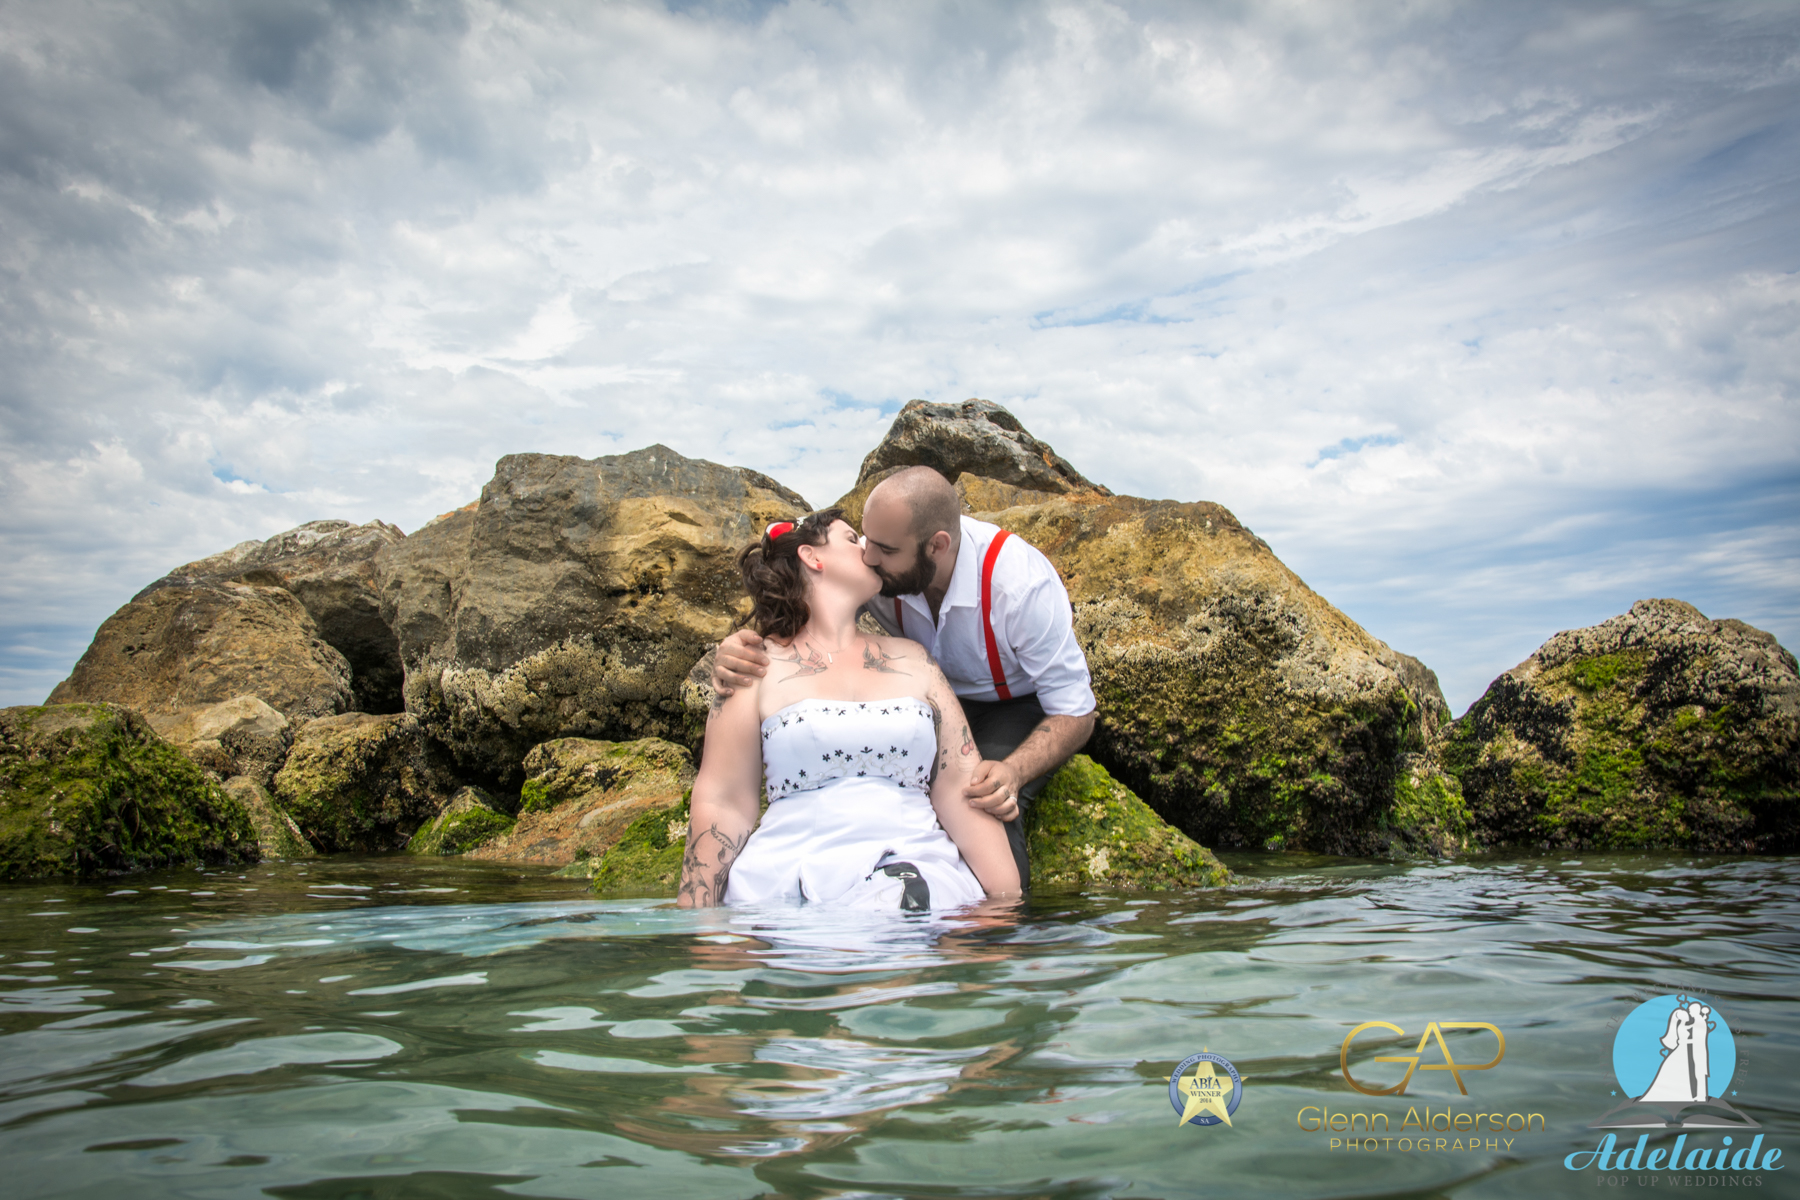 Adelaide Trash the dress